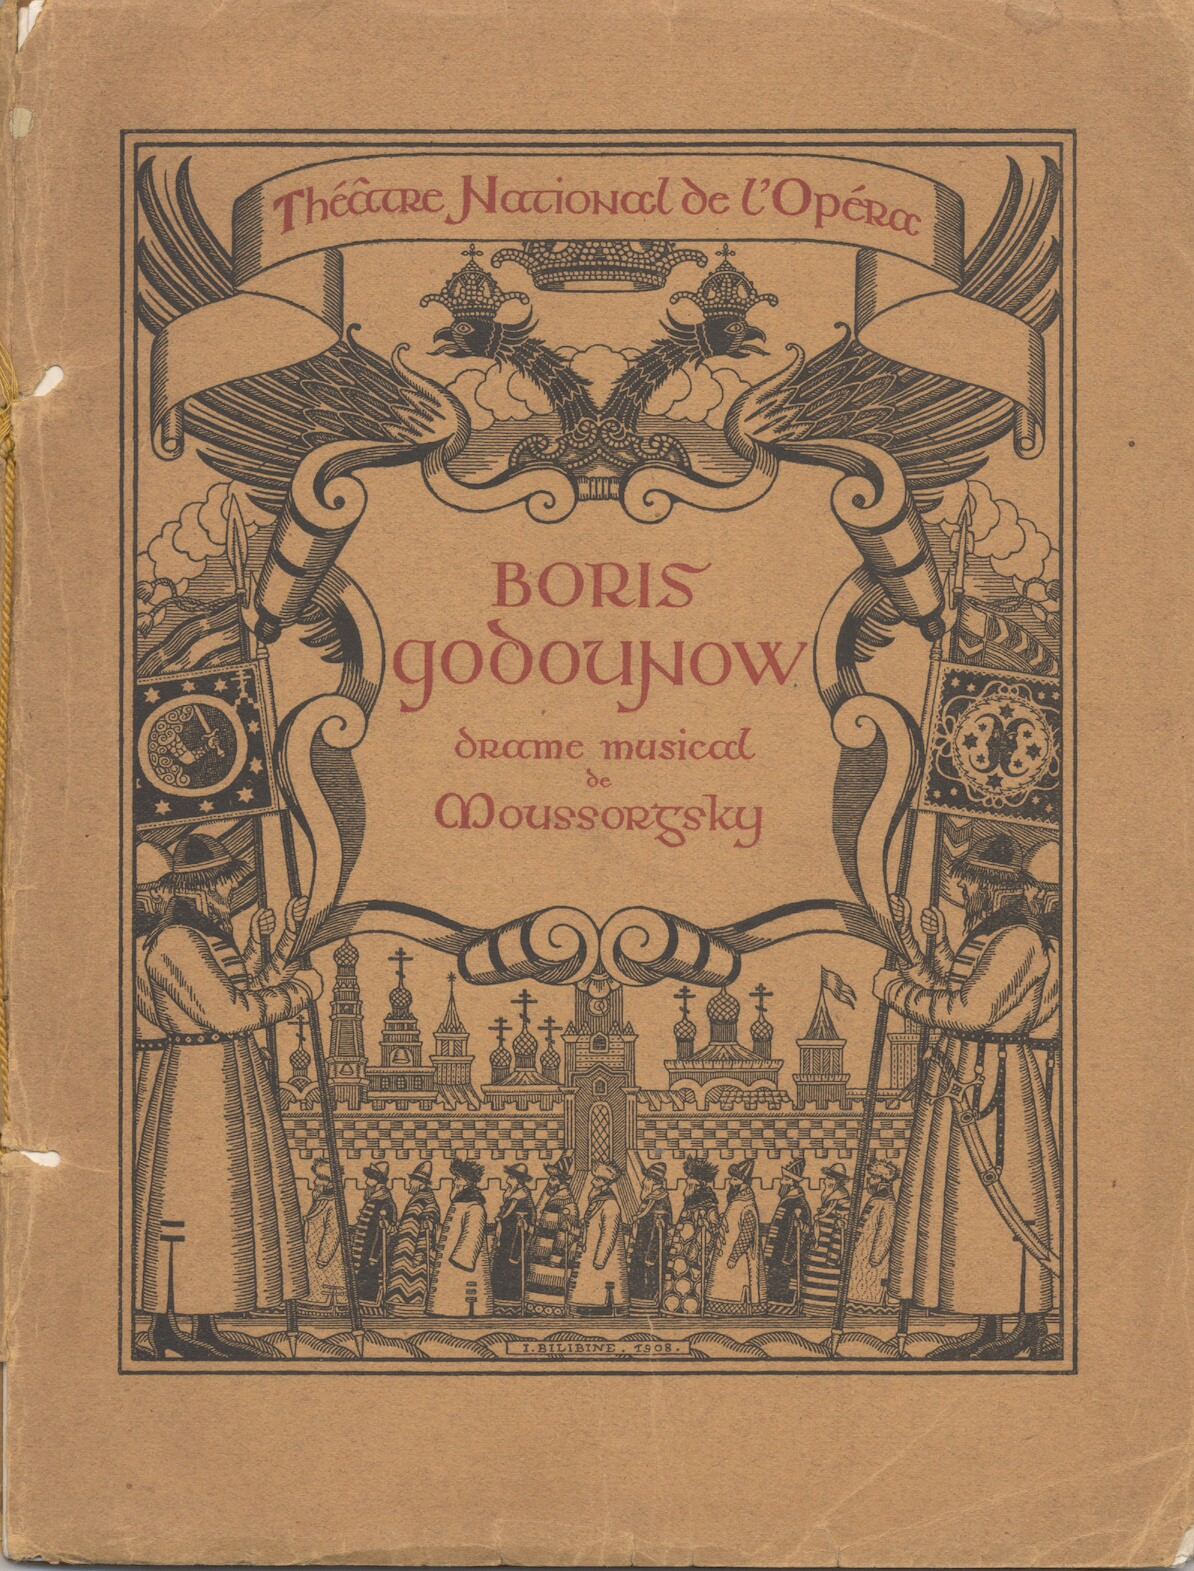 Cover page for Boris Godounov